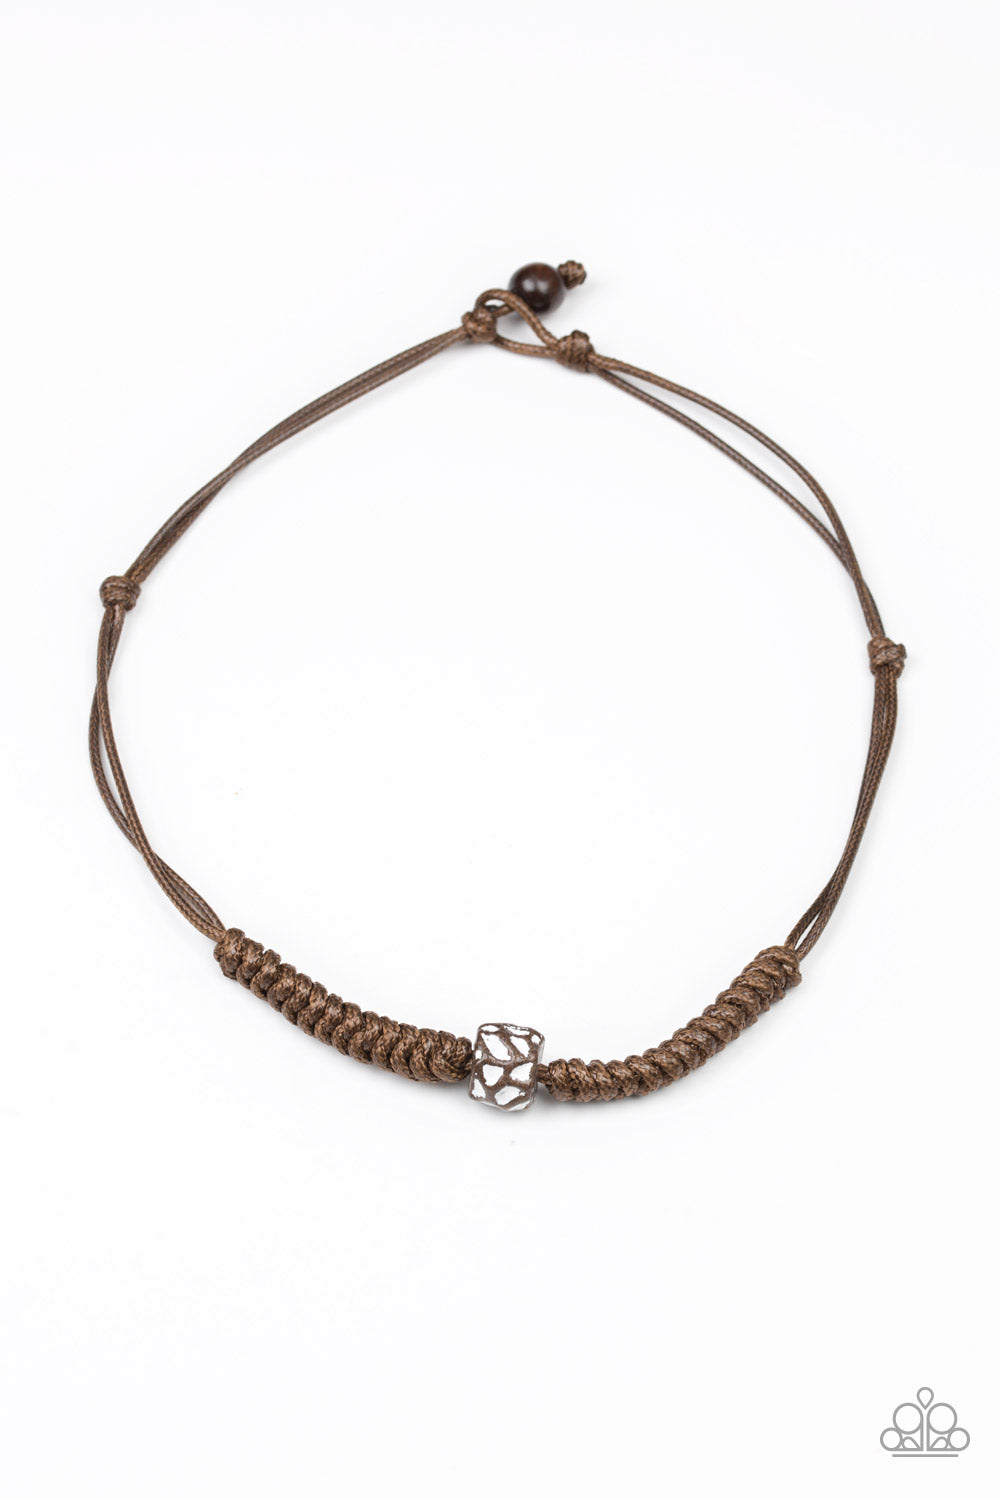 Paparazzi Accessories - Pacific Pioneer - Brown Necklace - JMJ Jewelry Collection